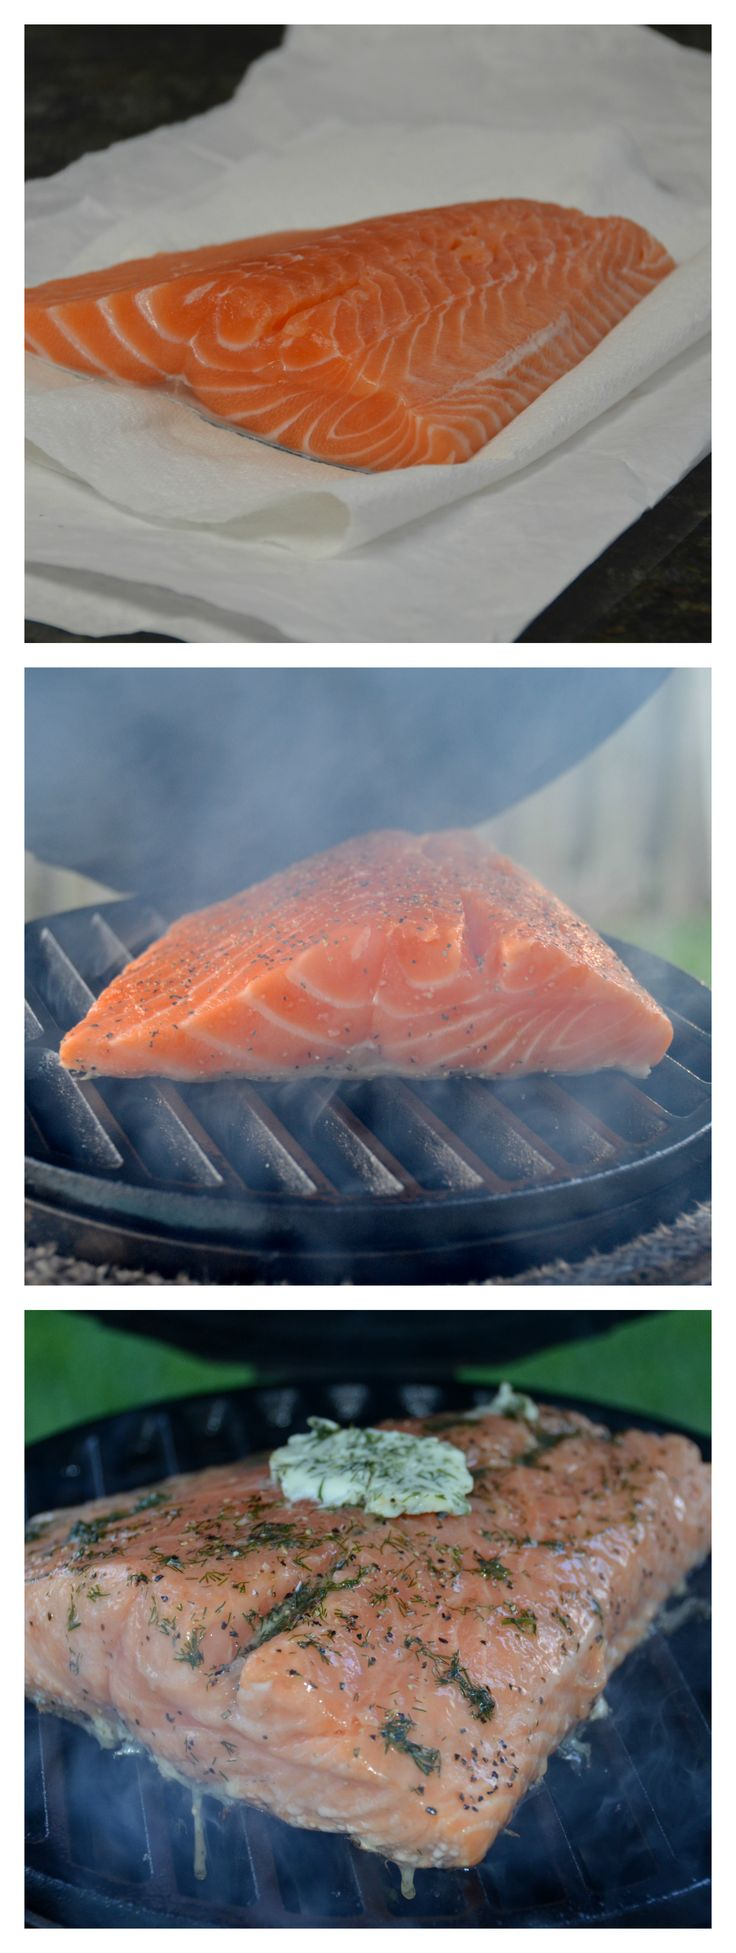 Backyard BBQ of my dreams #Contest with #Publix Salmon on the Big Green Egg | Necessary Indulgences